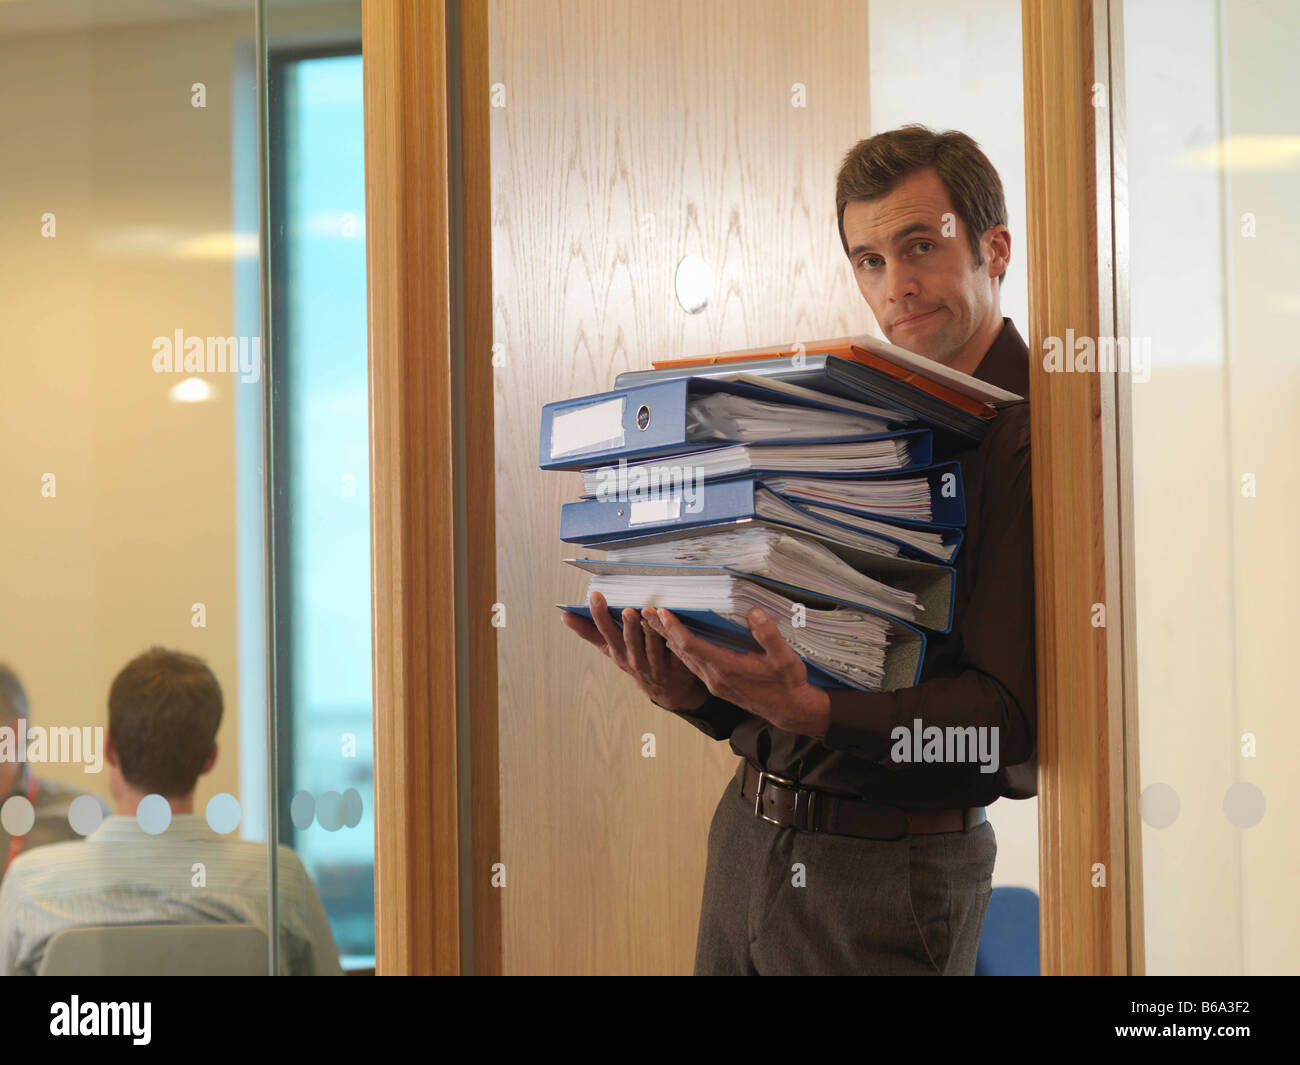 Office staff with files - Stock Image